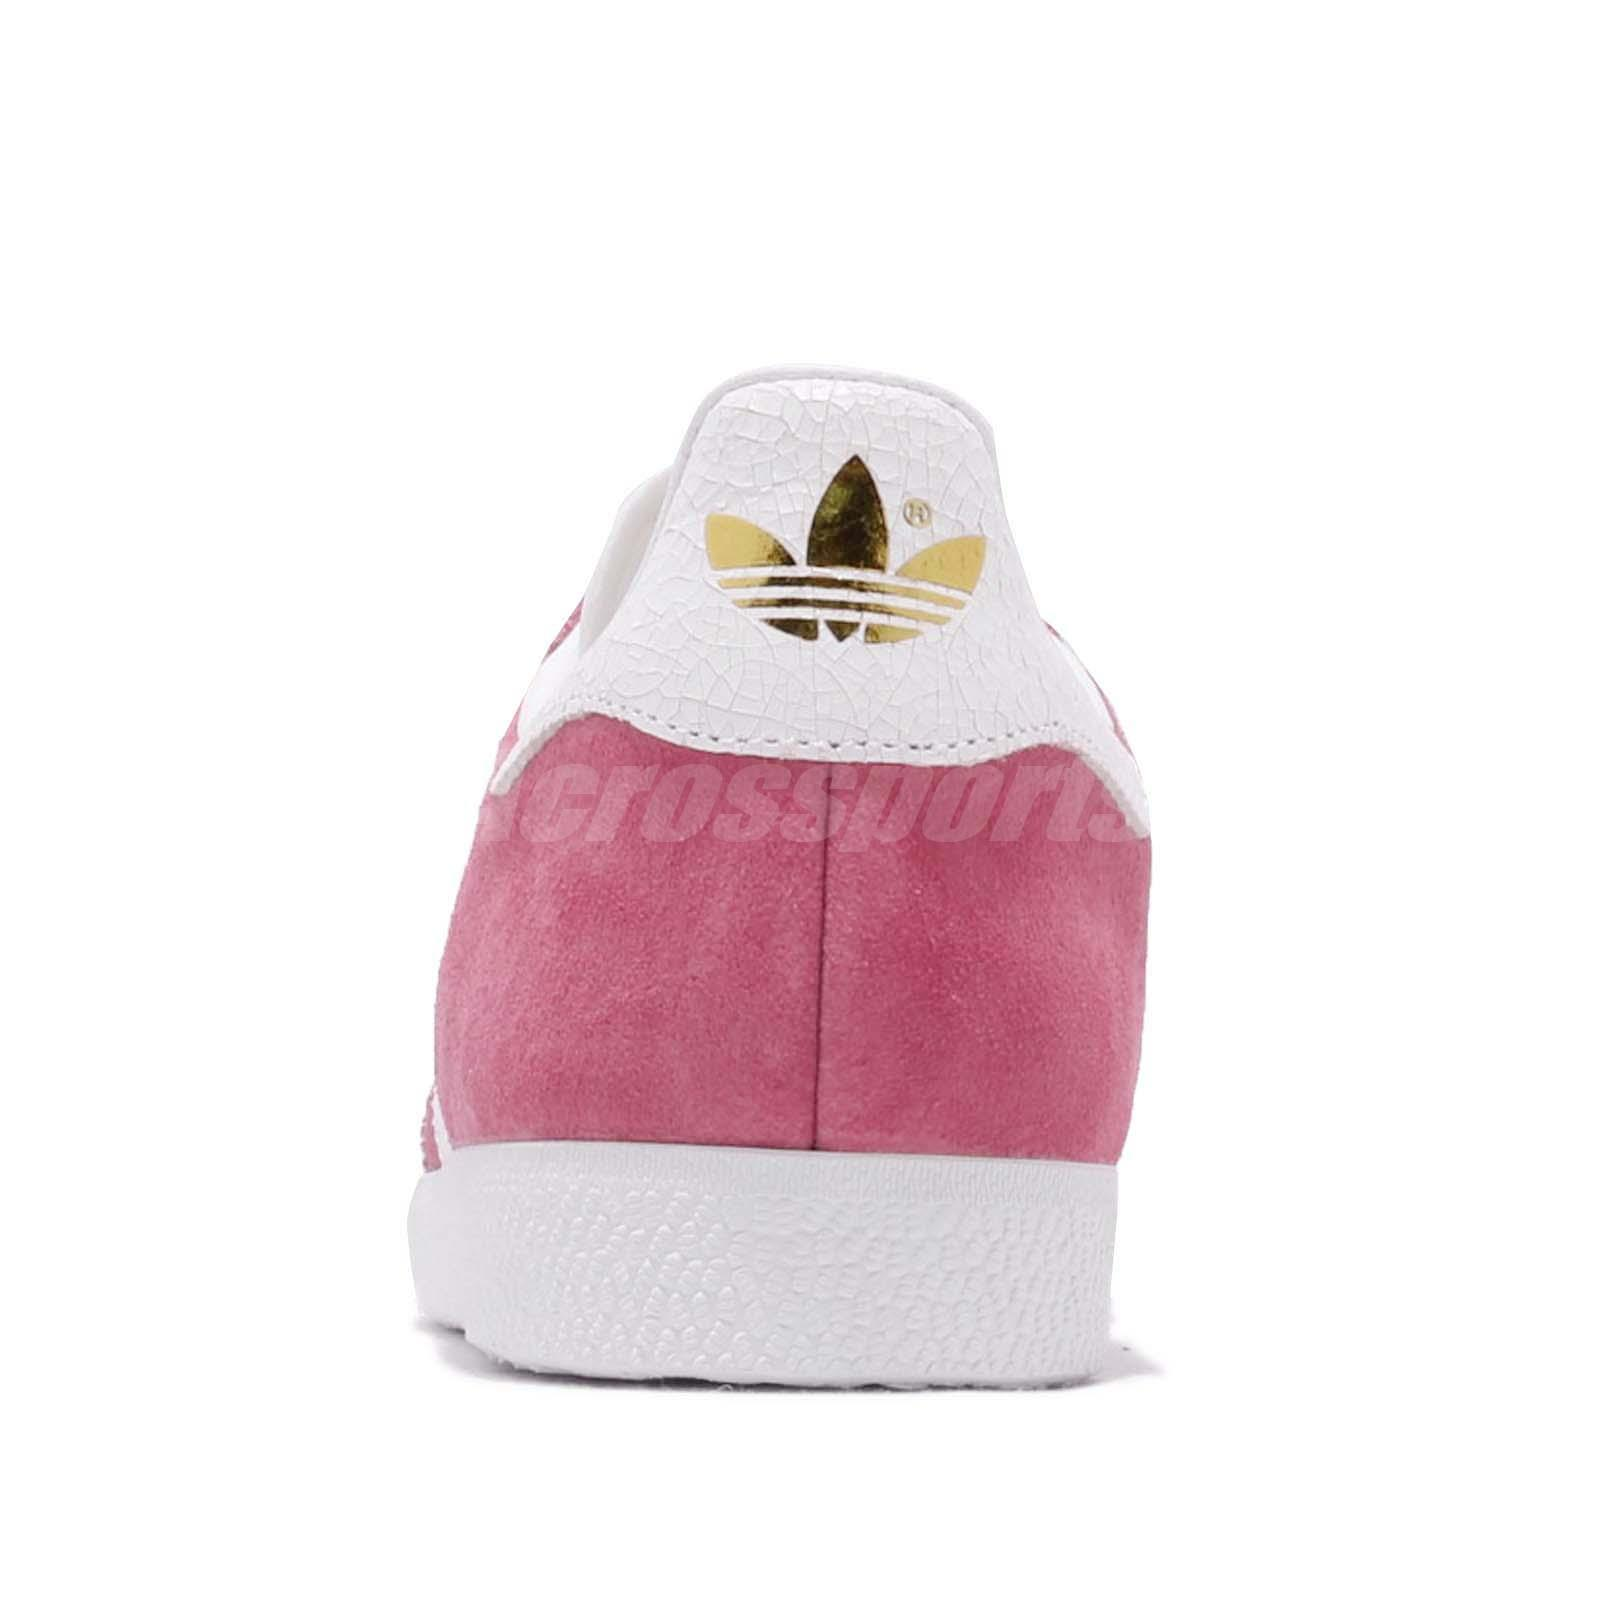 profesional aprobar Punto de referencia  adidas Originals Gazelle W Pink White Women Casual Classic Shoes Sneakers  B41658 | eBay